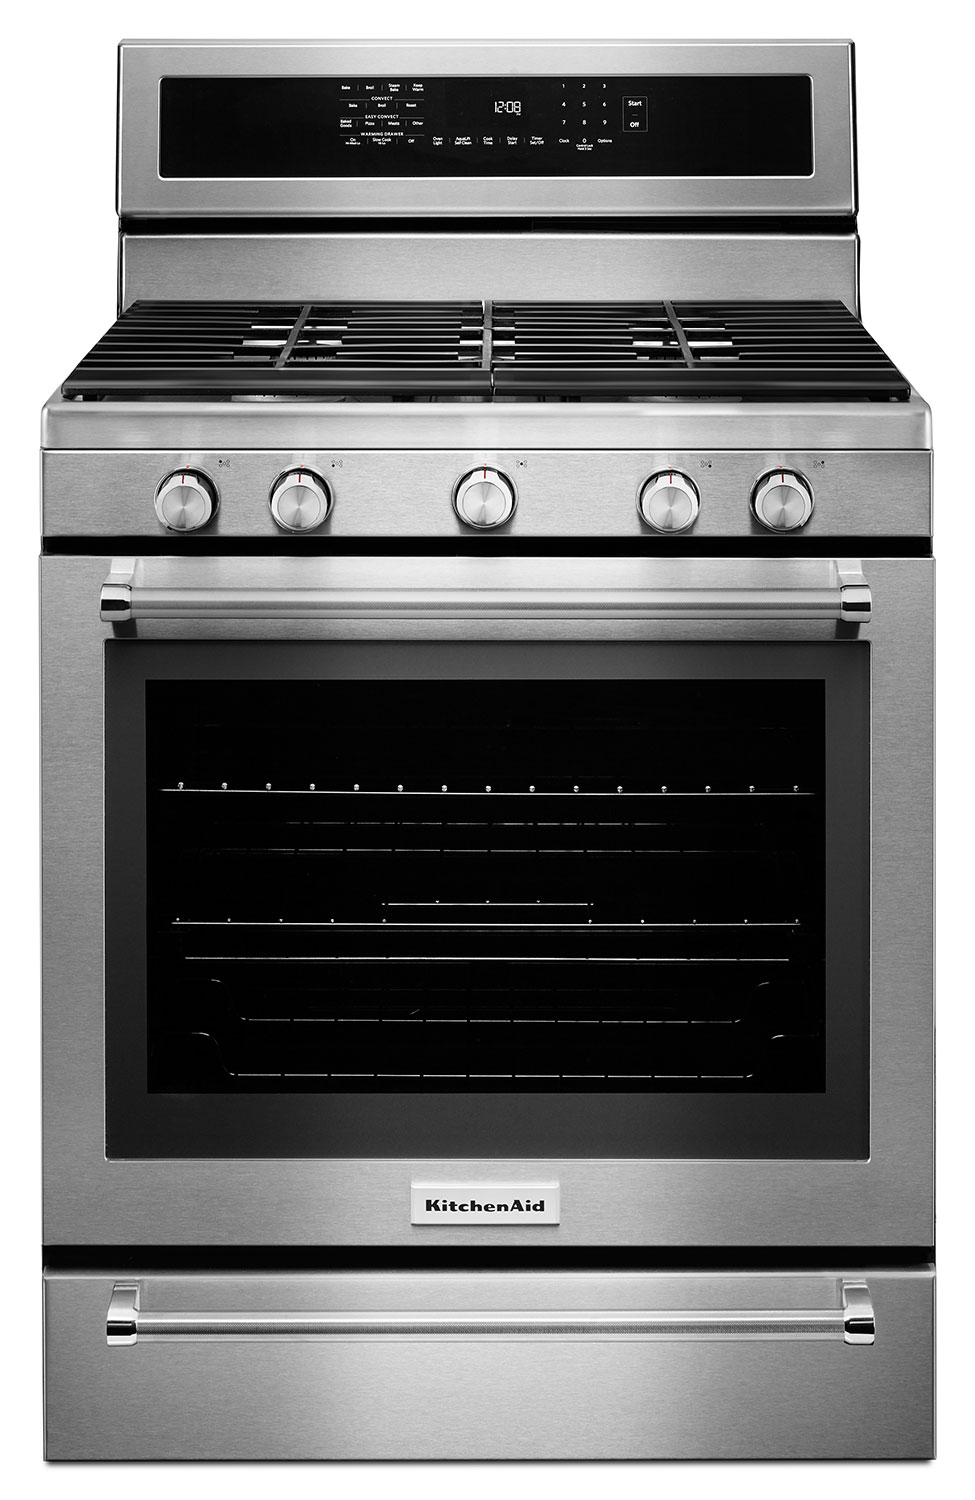 KitchenAid Freestanding Stainless Steel True Convection Gas Range (5.8 Cu. Ft.) - KFGS530ESS